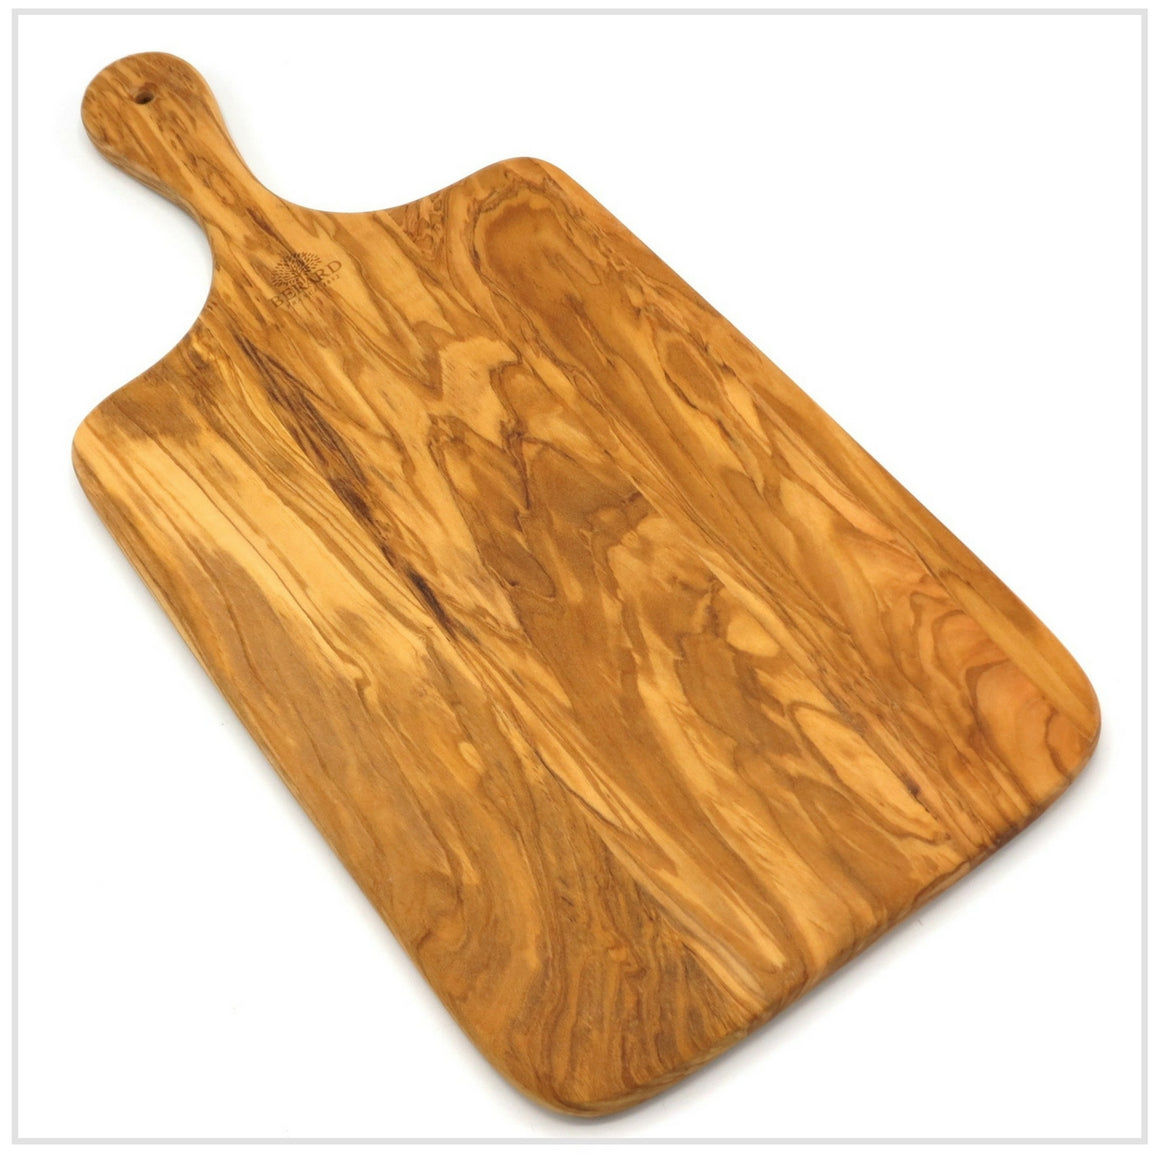 Cutting Board with Handle in Olive Wood